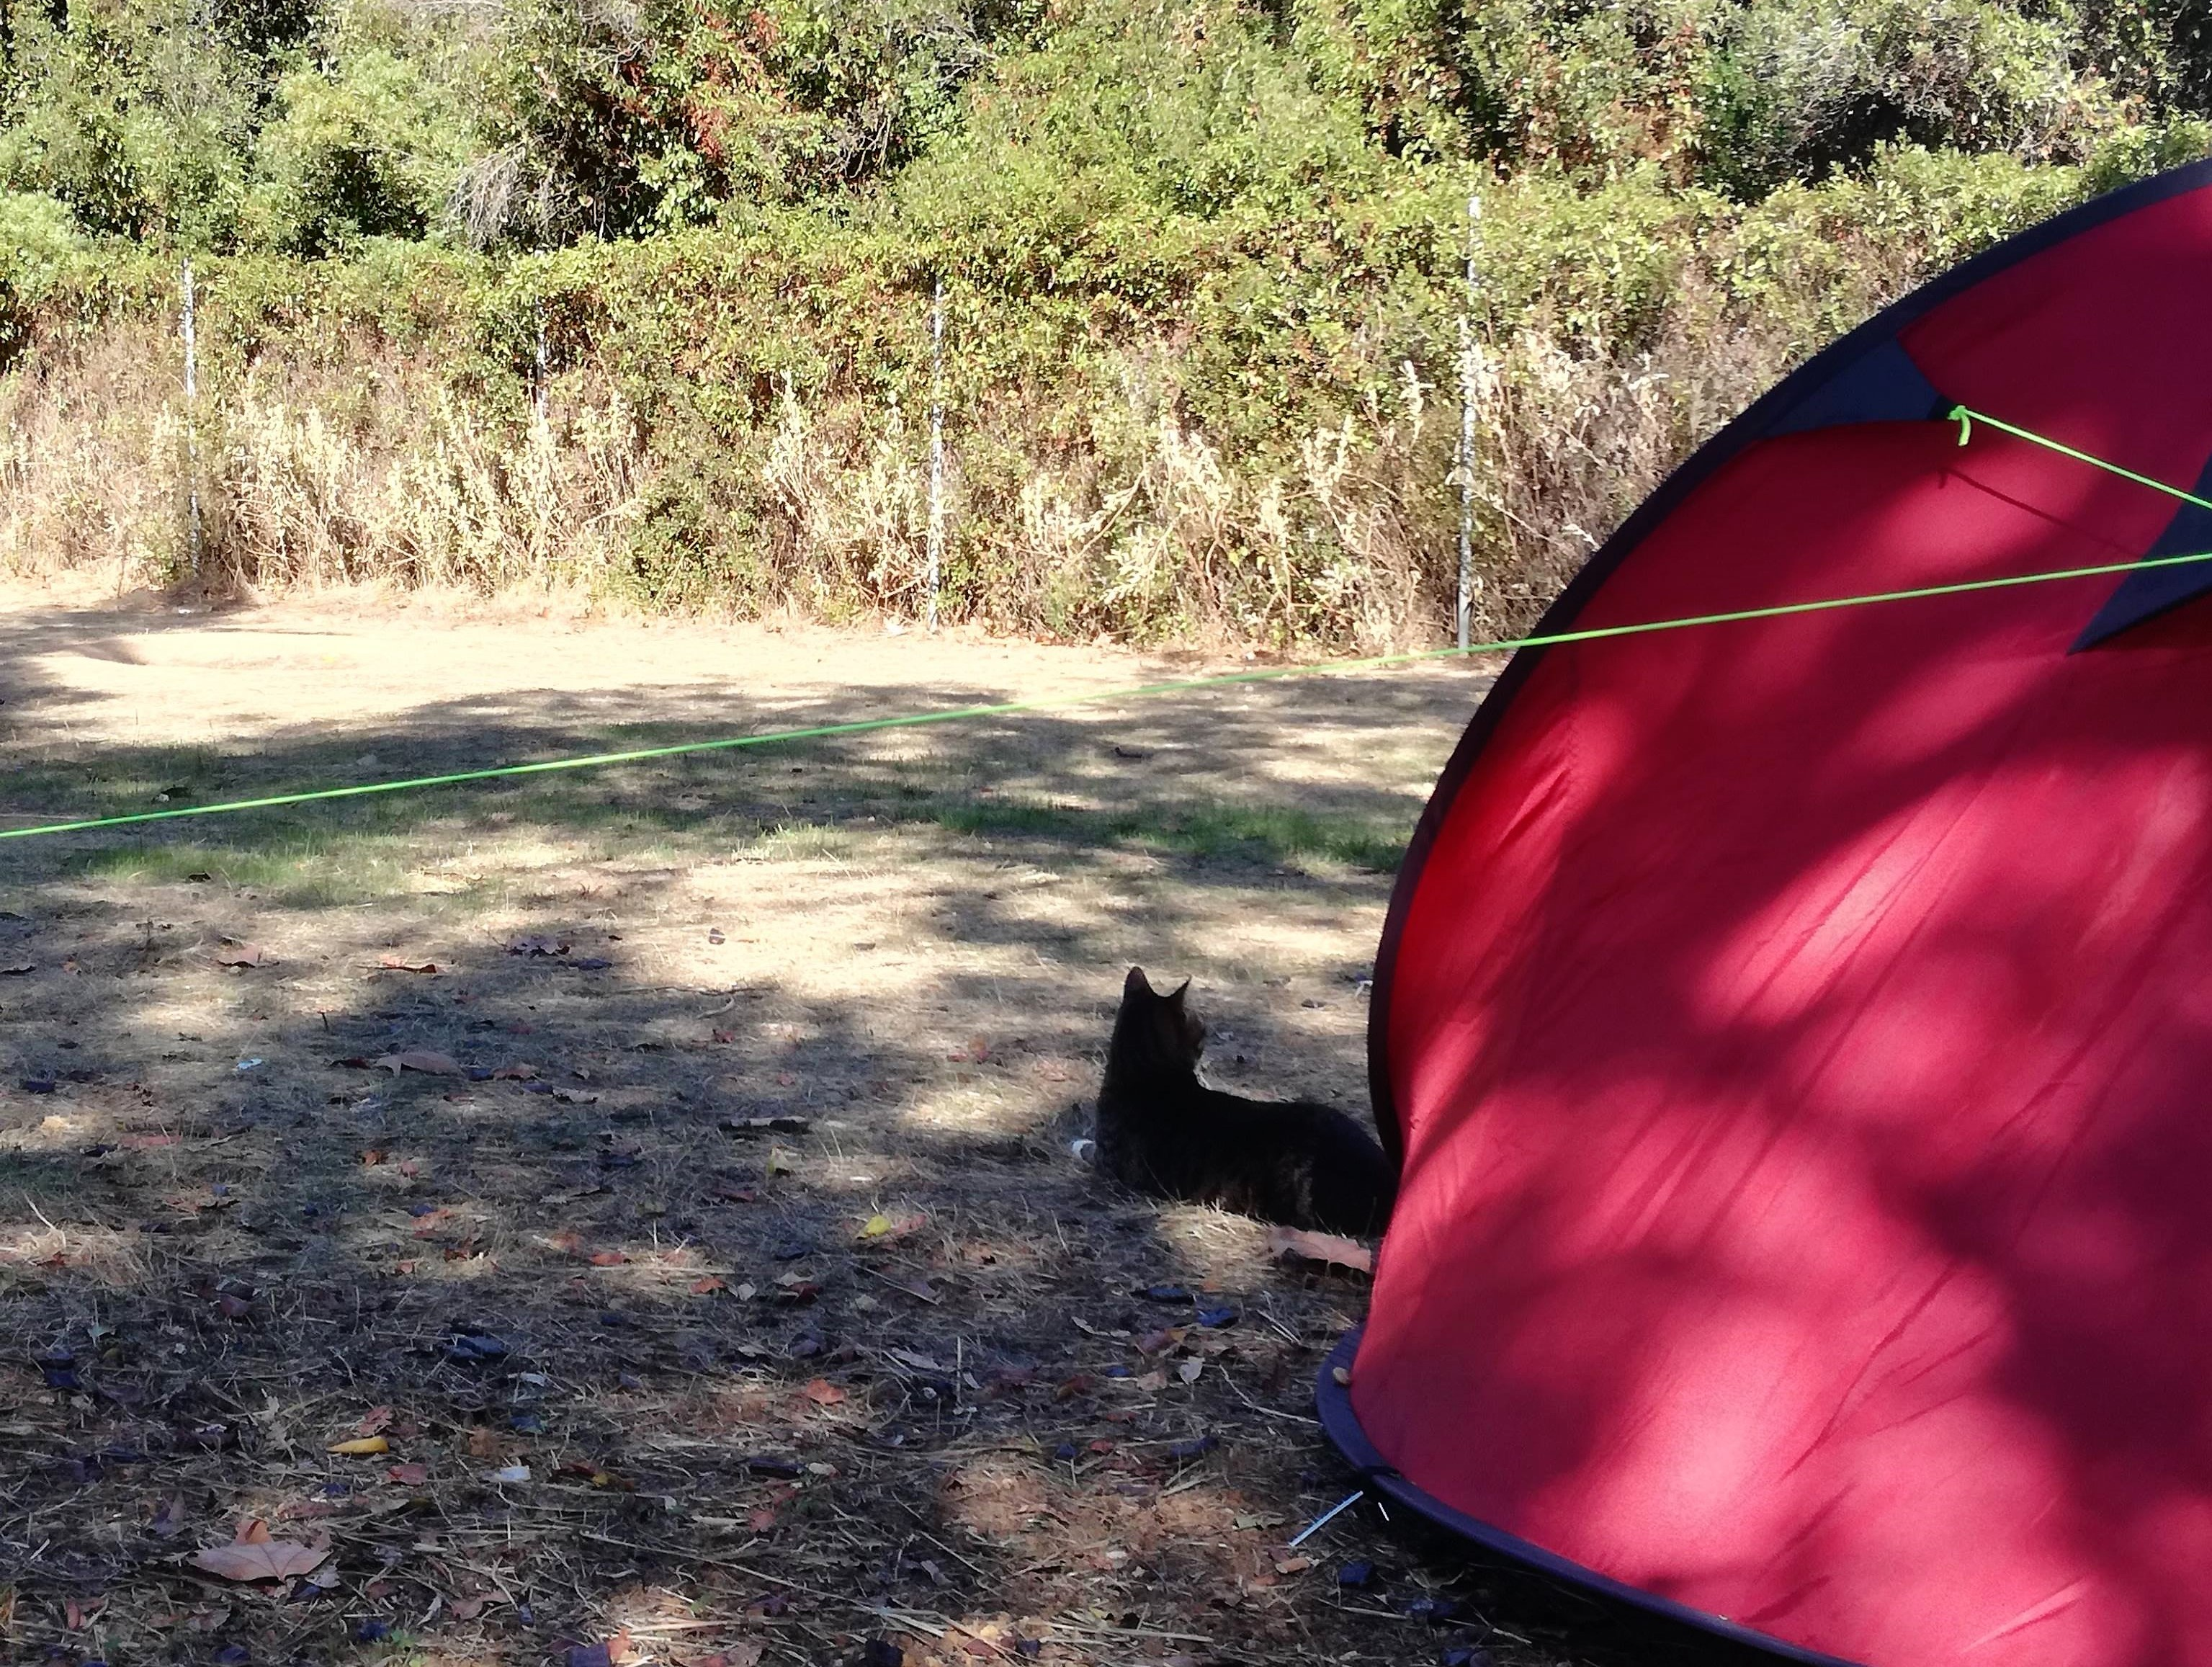 Vagabond cats in nature